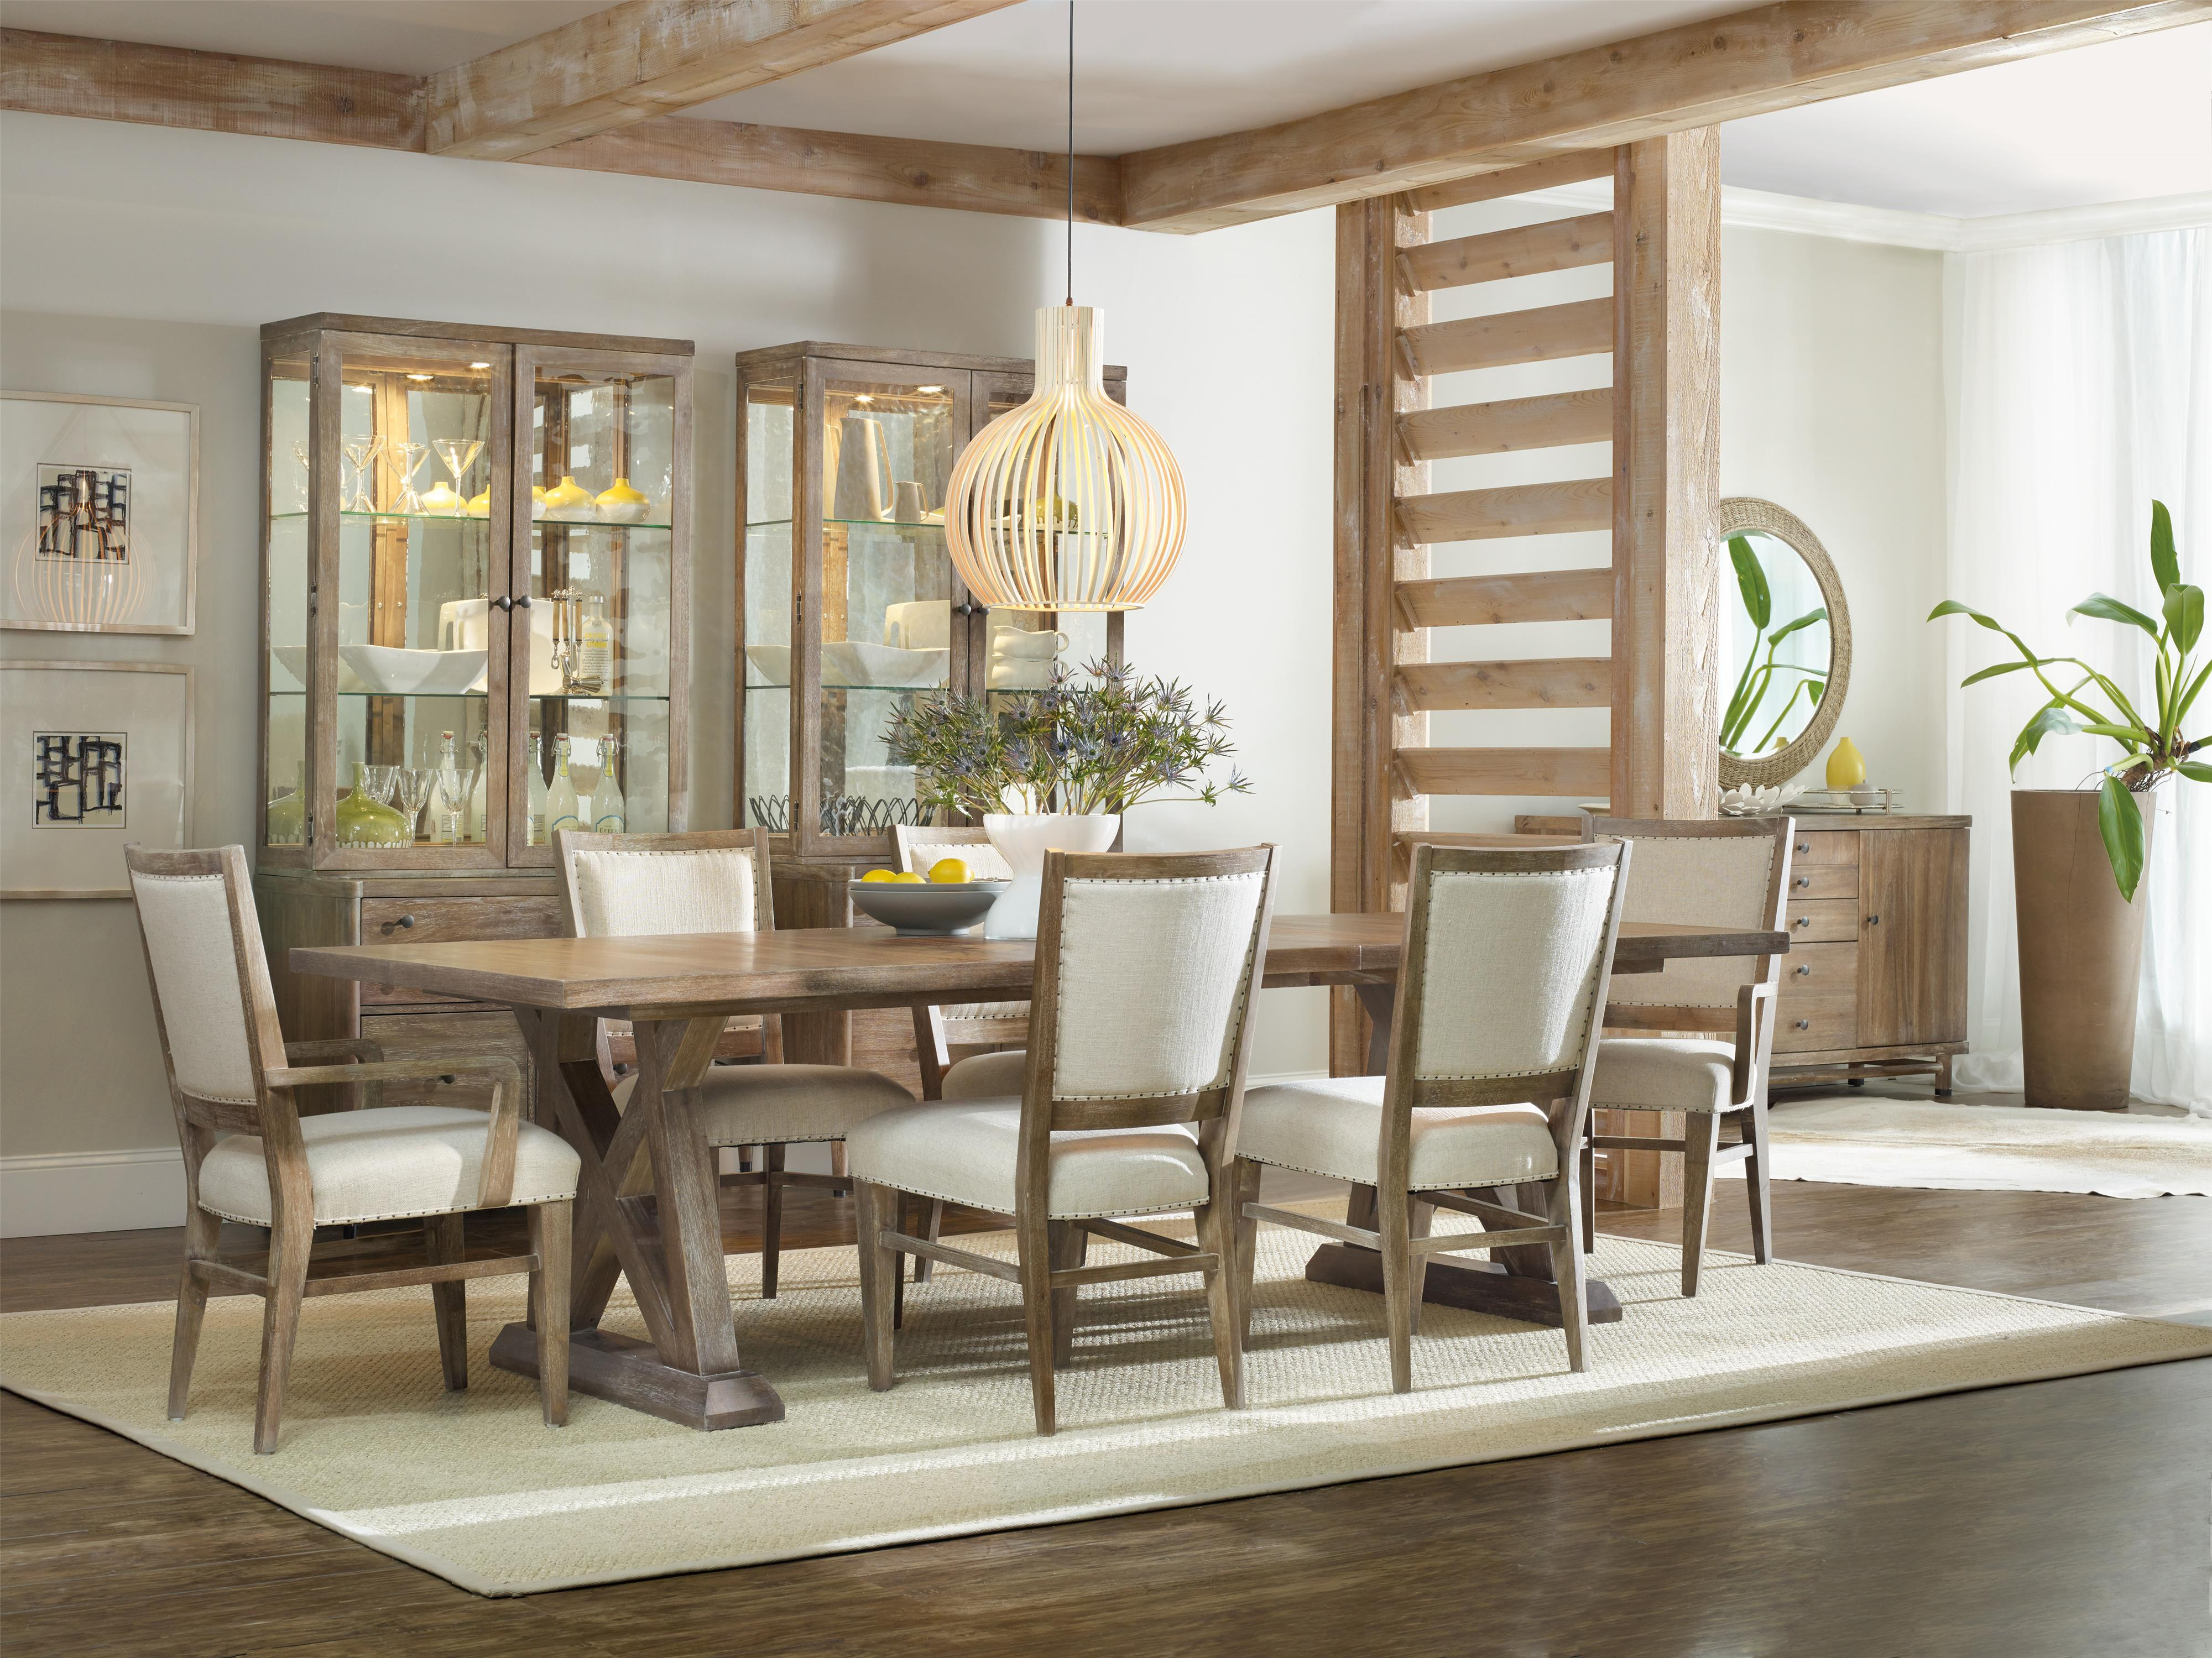 Hooker Furniture Studio 7H 7 Piece Dining Set with Geo Trestle Table and Stol Upholstered Chairs ...